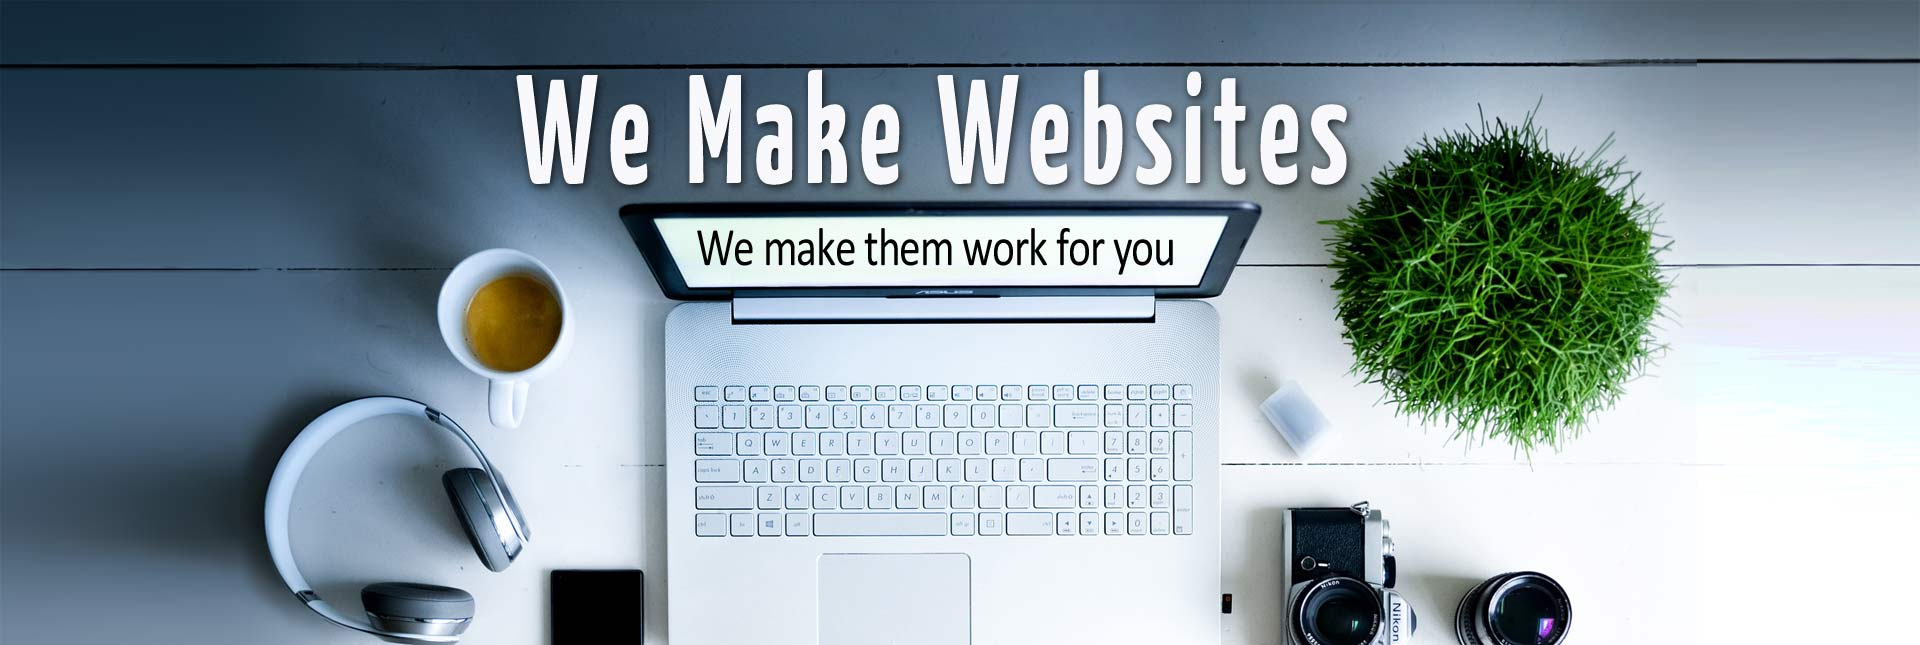 digital-streams-digital-media-we-make-websites